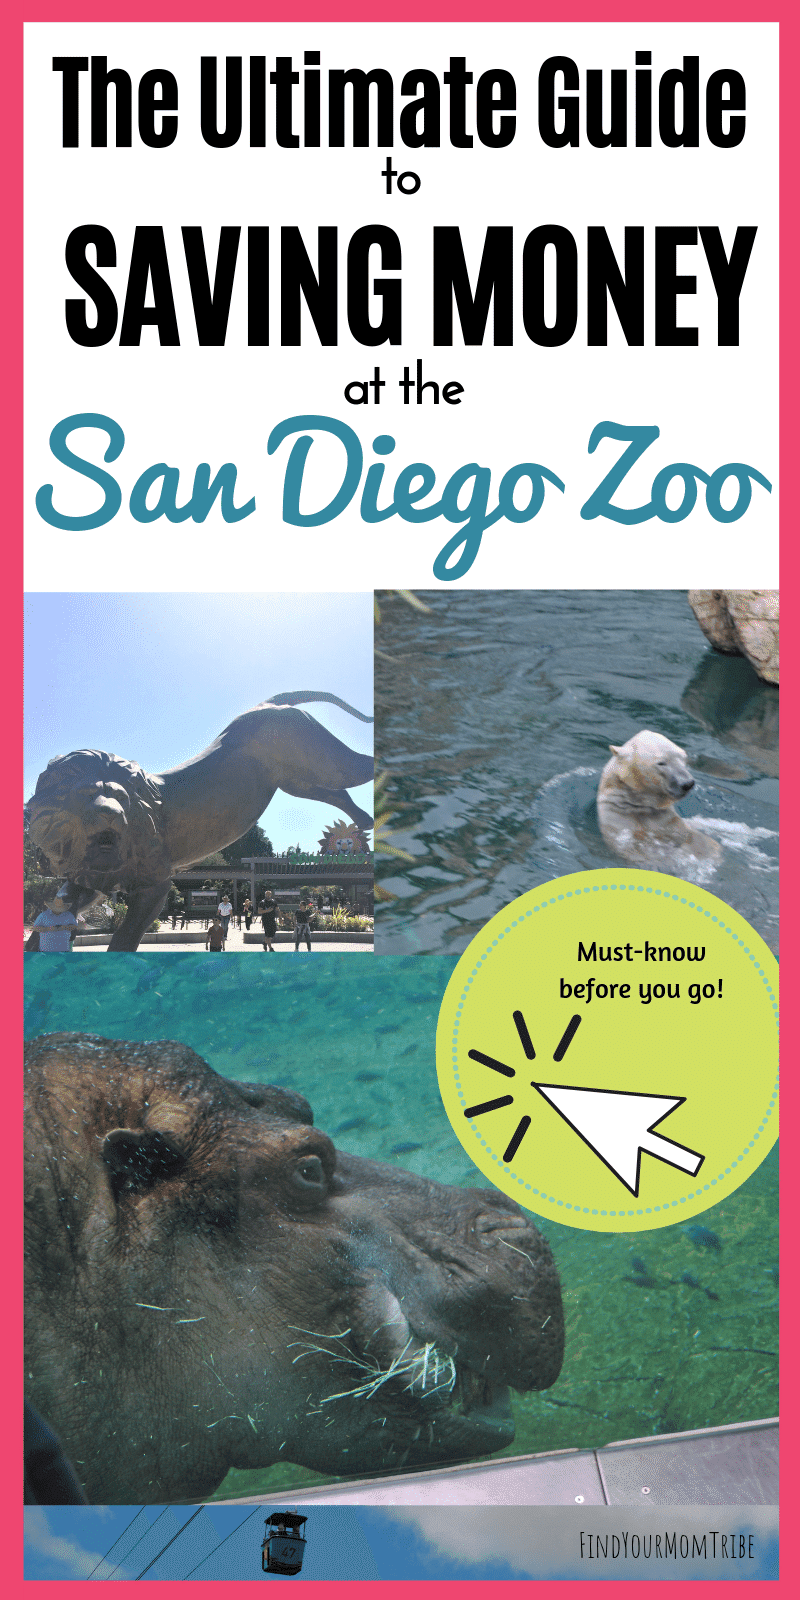 How to save money on a trip to the San Diego Zoo